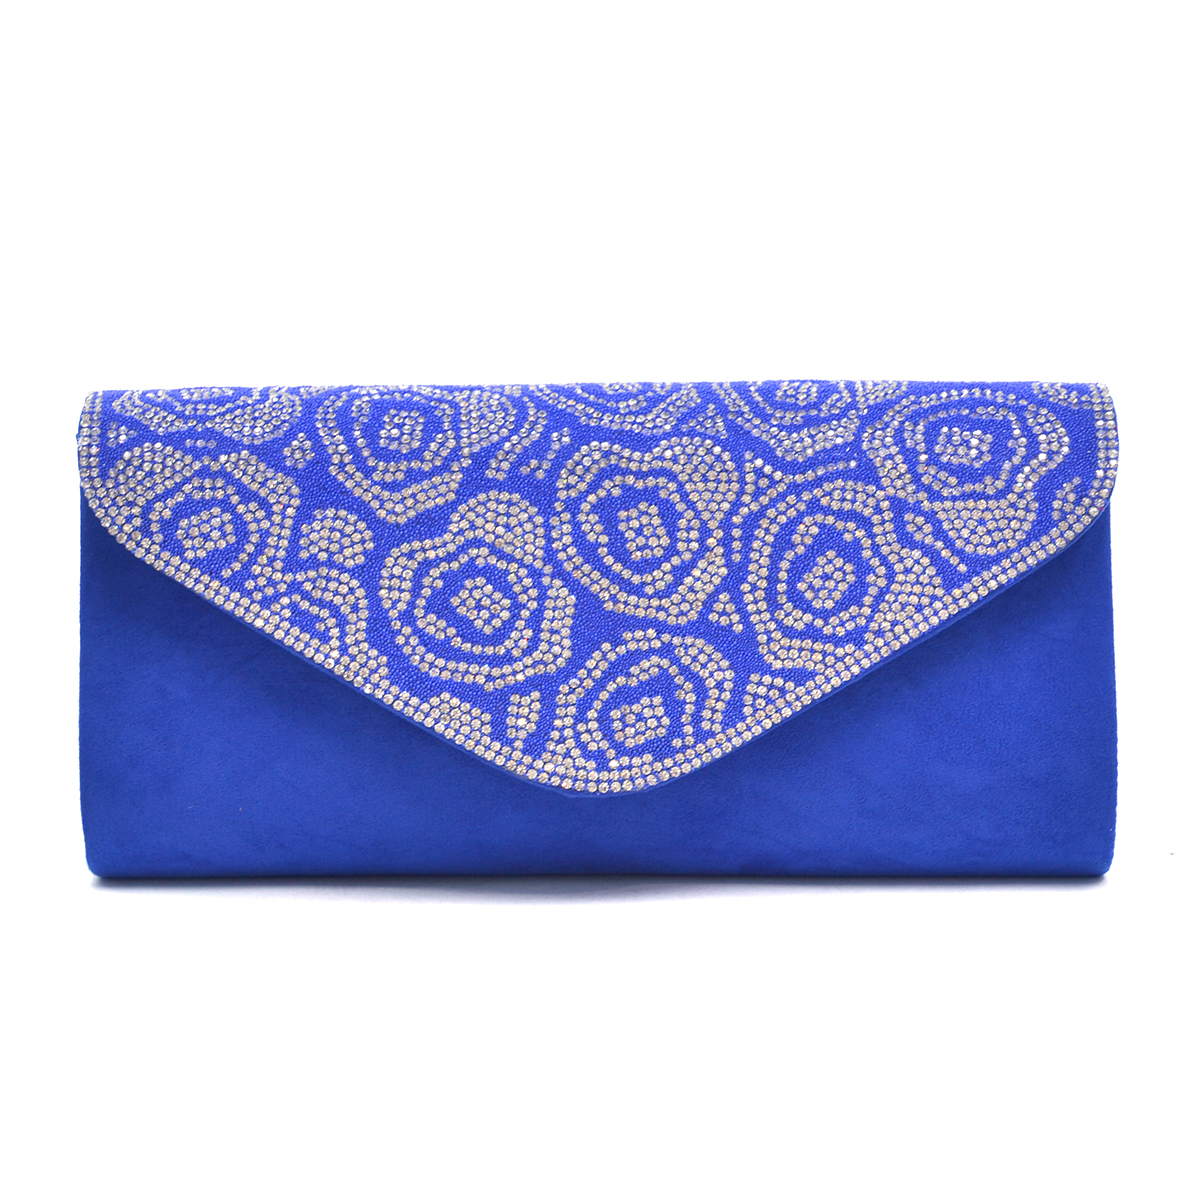 Glitter Mini Rhinestones Evening Clutch  in a Floral Pattern Design